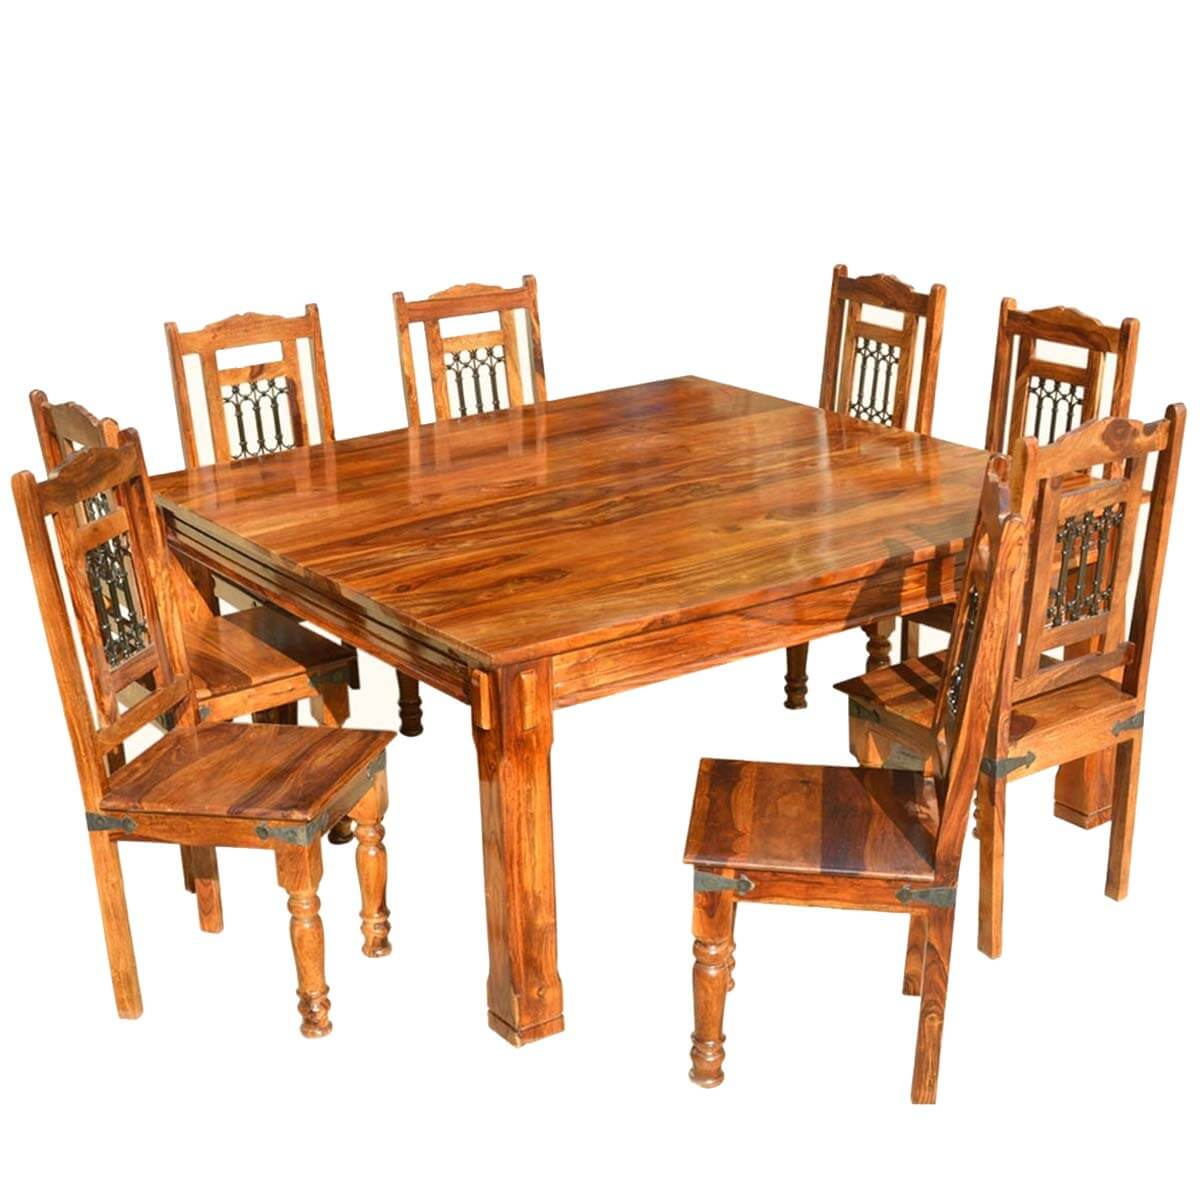 Rustic Dining Table Set Rustic Dining Table And Bench Set 100 Rustic Dining Room Furniture